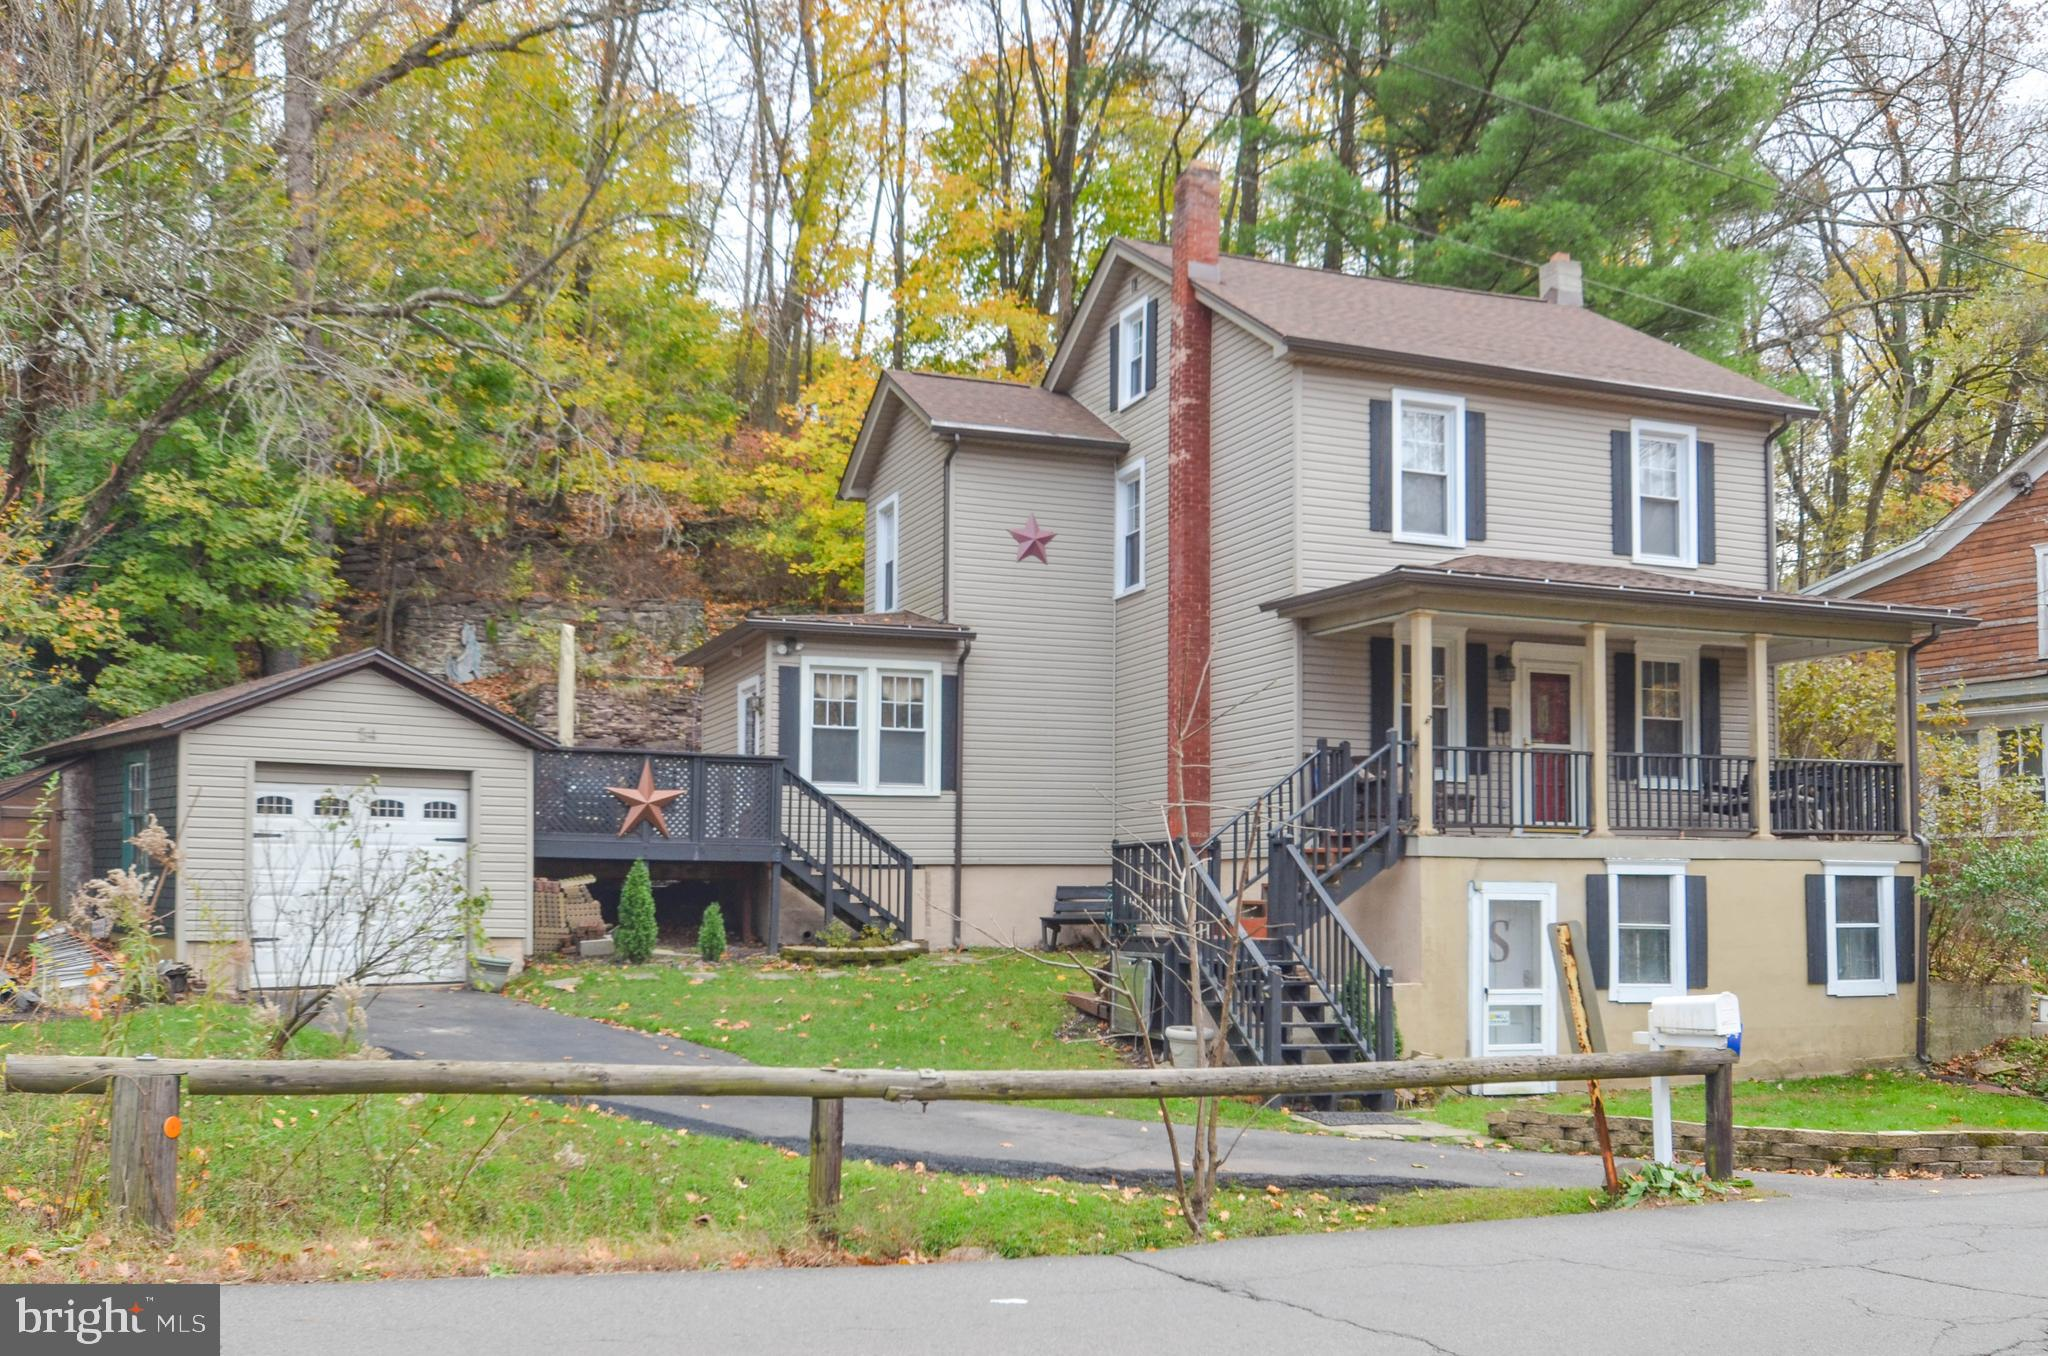 54 WILBUR STREET, WEATHERLY, PA 18255